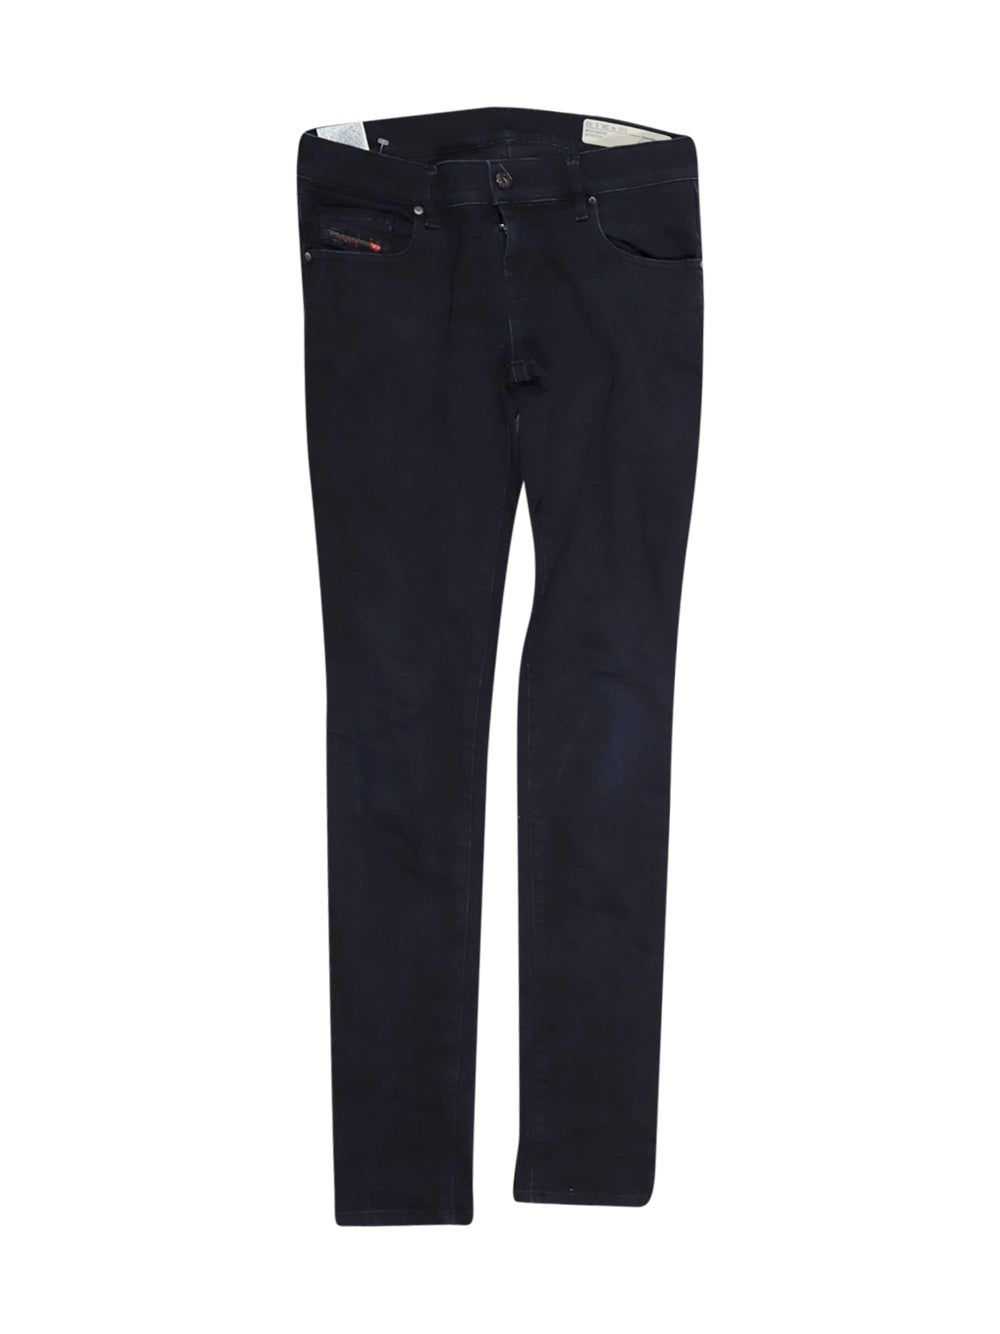 Front photo of Preloved Diesel Blue Woman's trousers - size 10/M